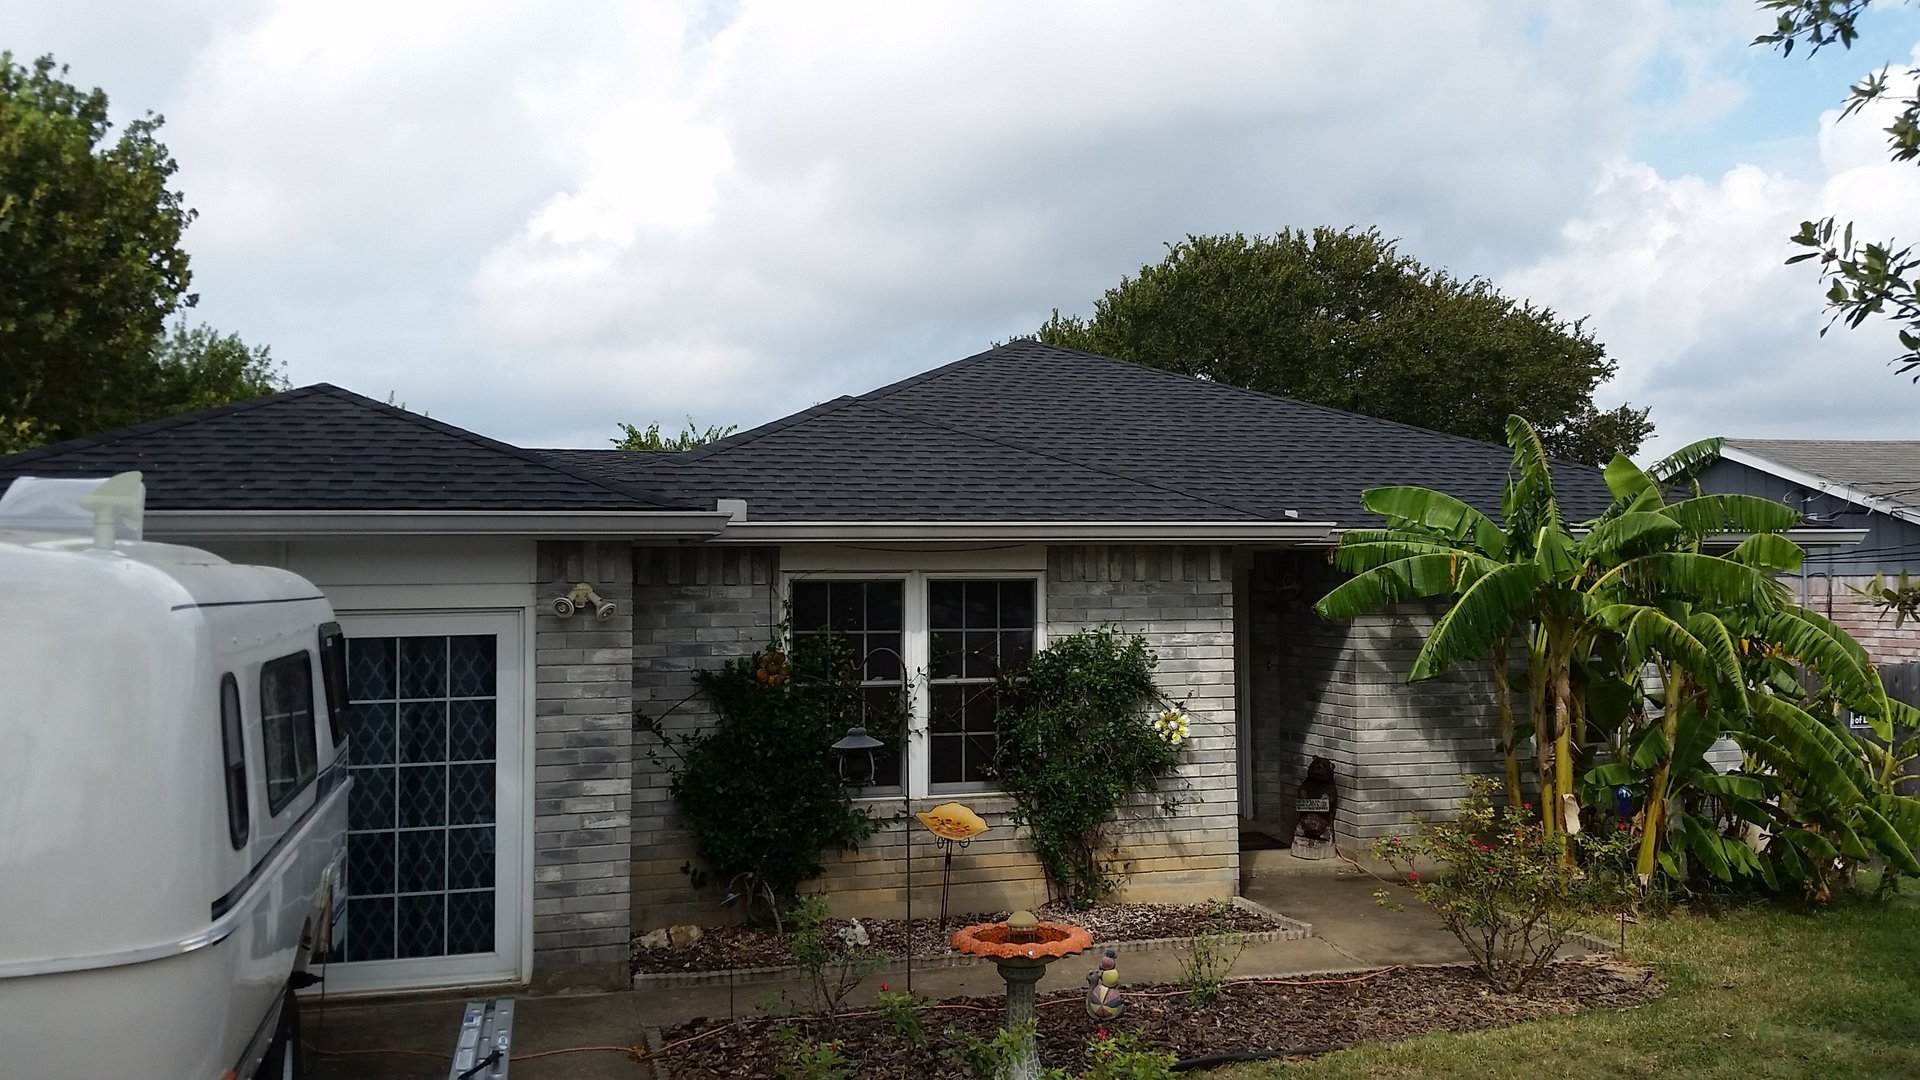 GAF Timberline HD Architectural Shingles - Color is Charcoal by Austin Roofing and Construction